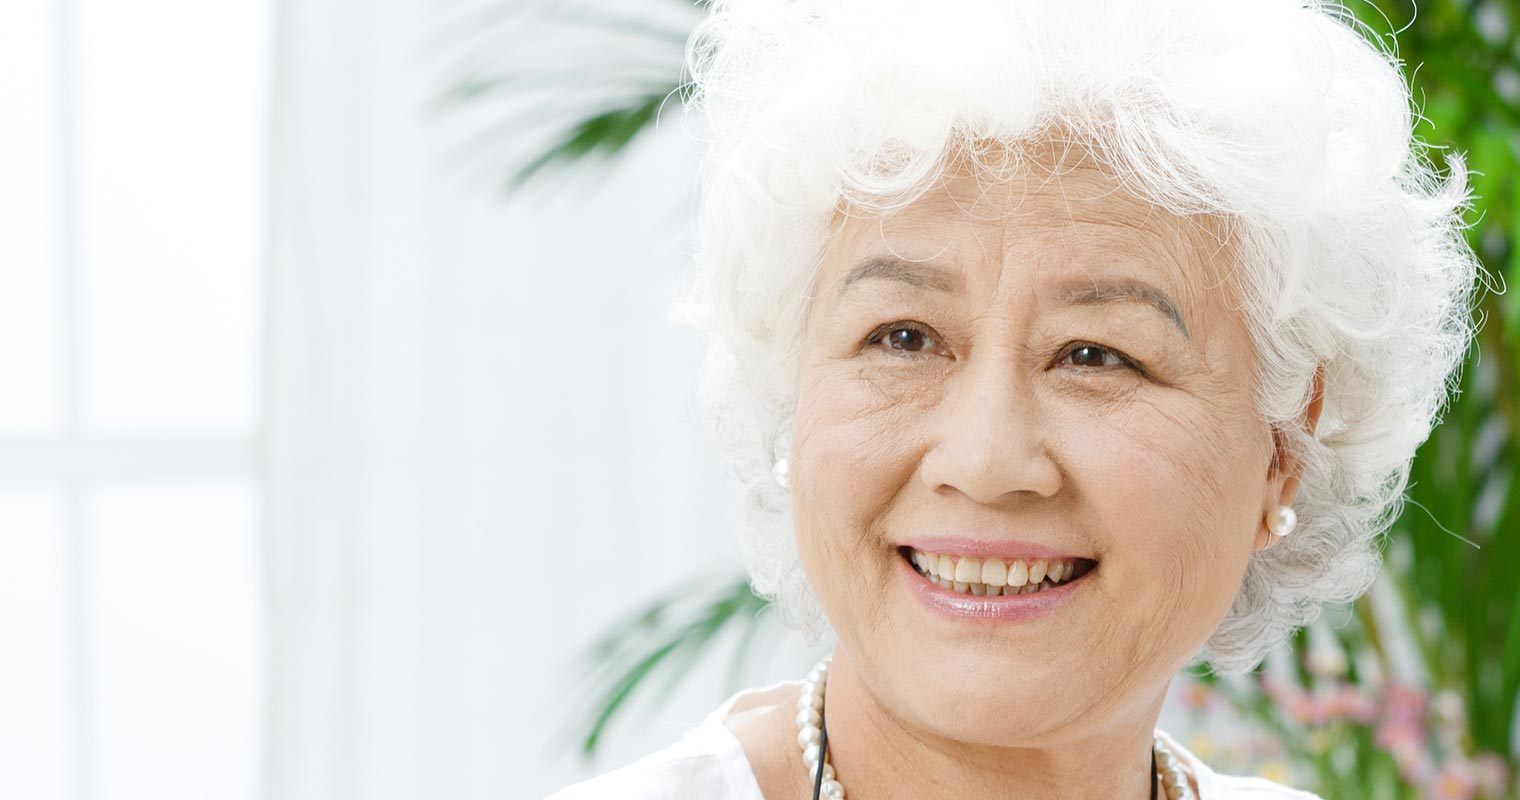 How to manage wrinkles using probiotics